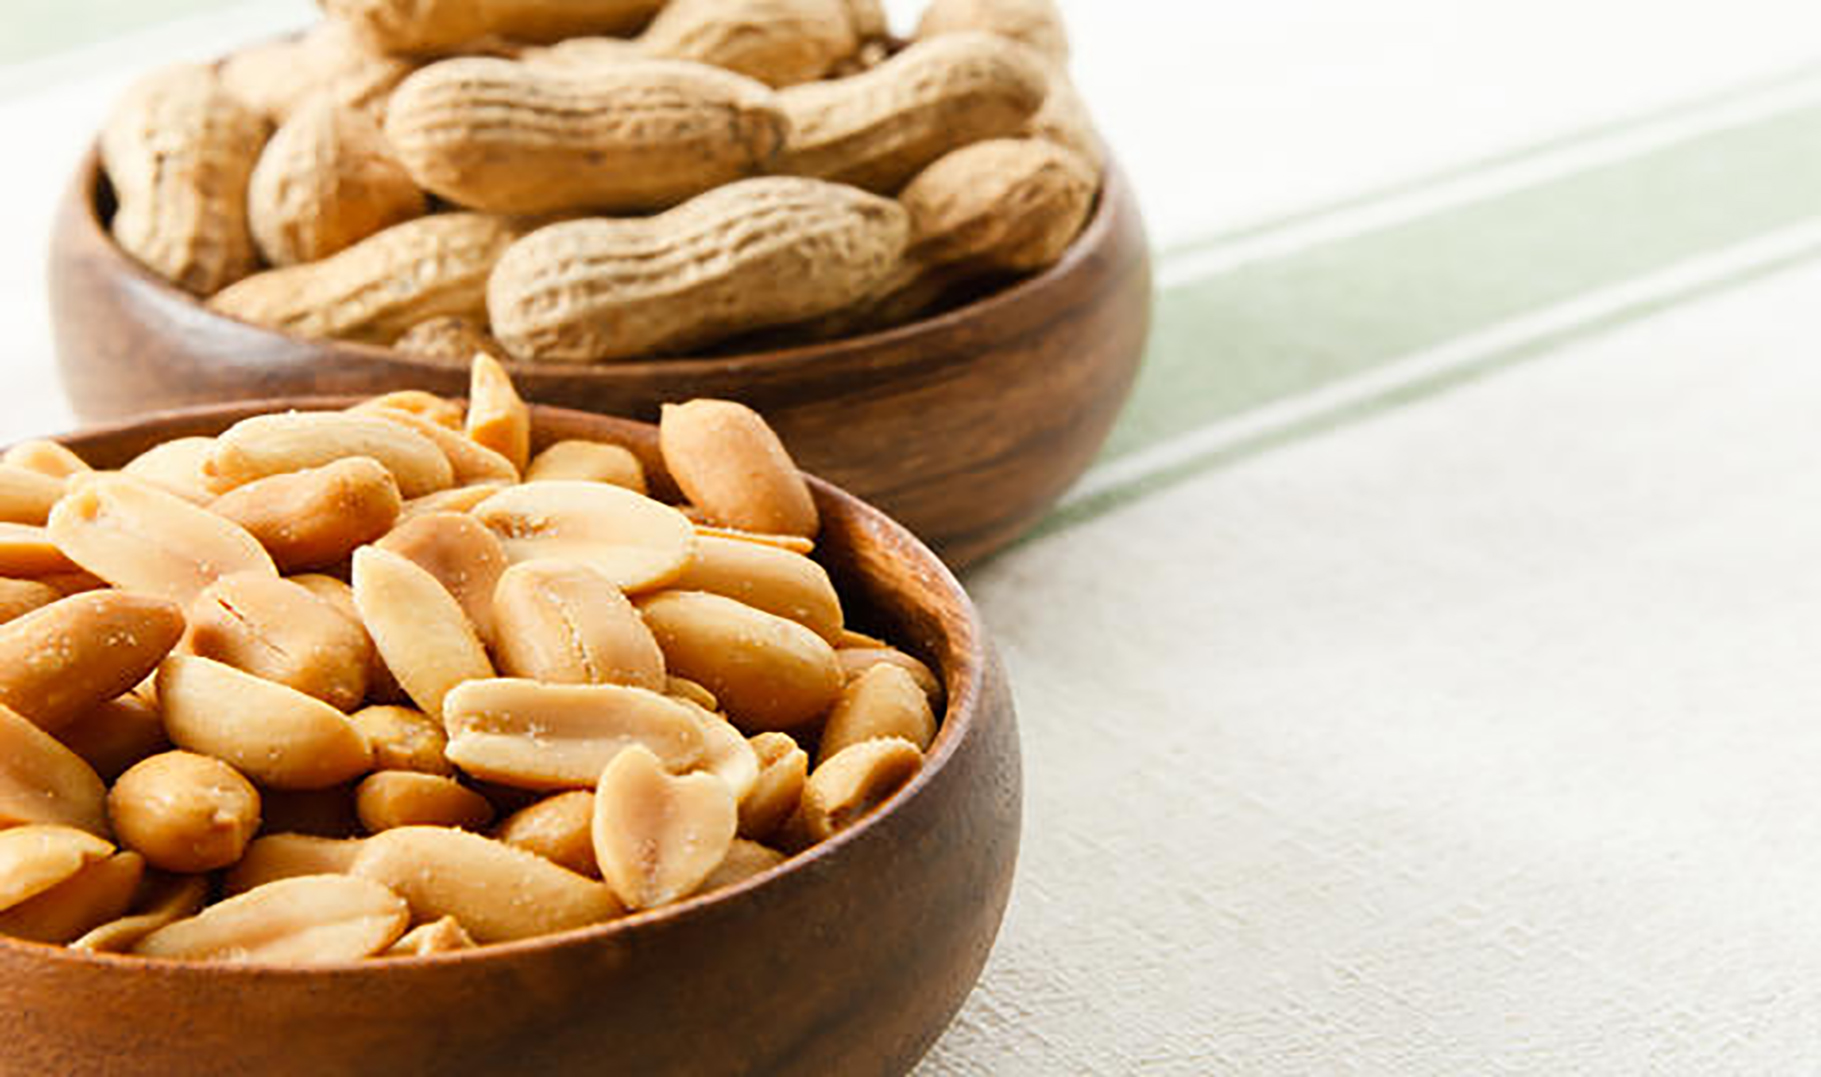 Peanuts The Superfood That Fights Cancer